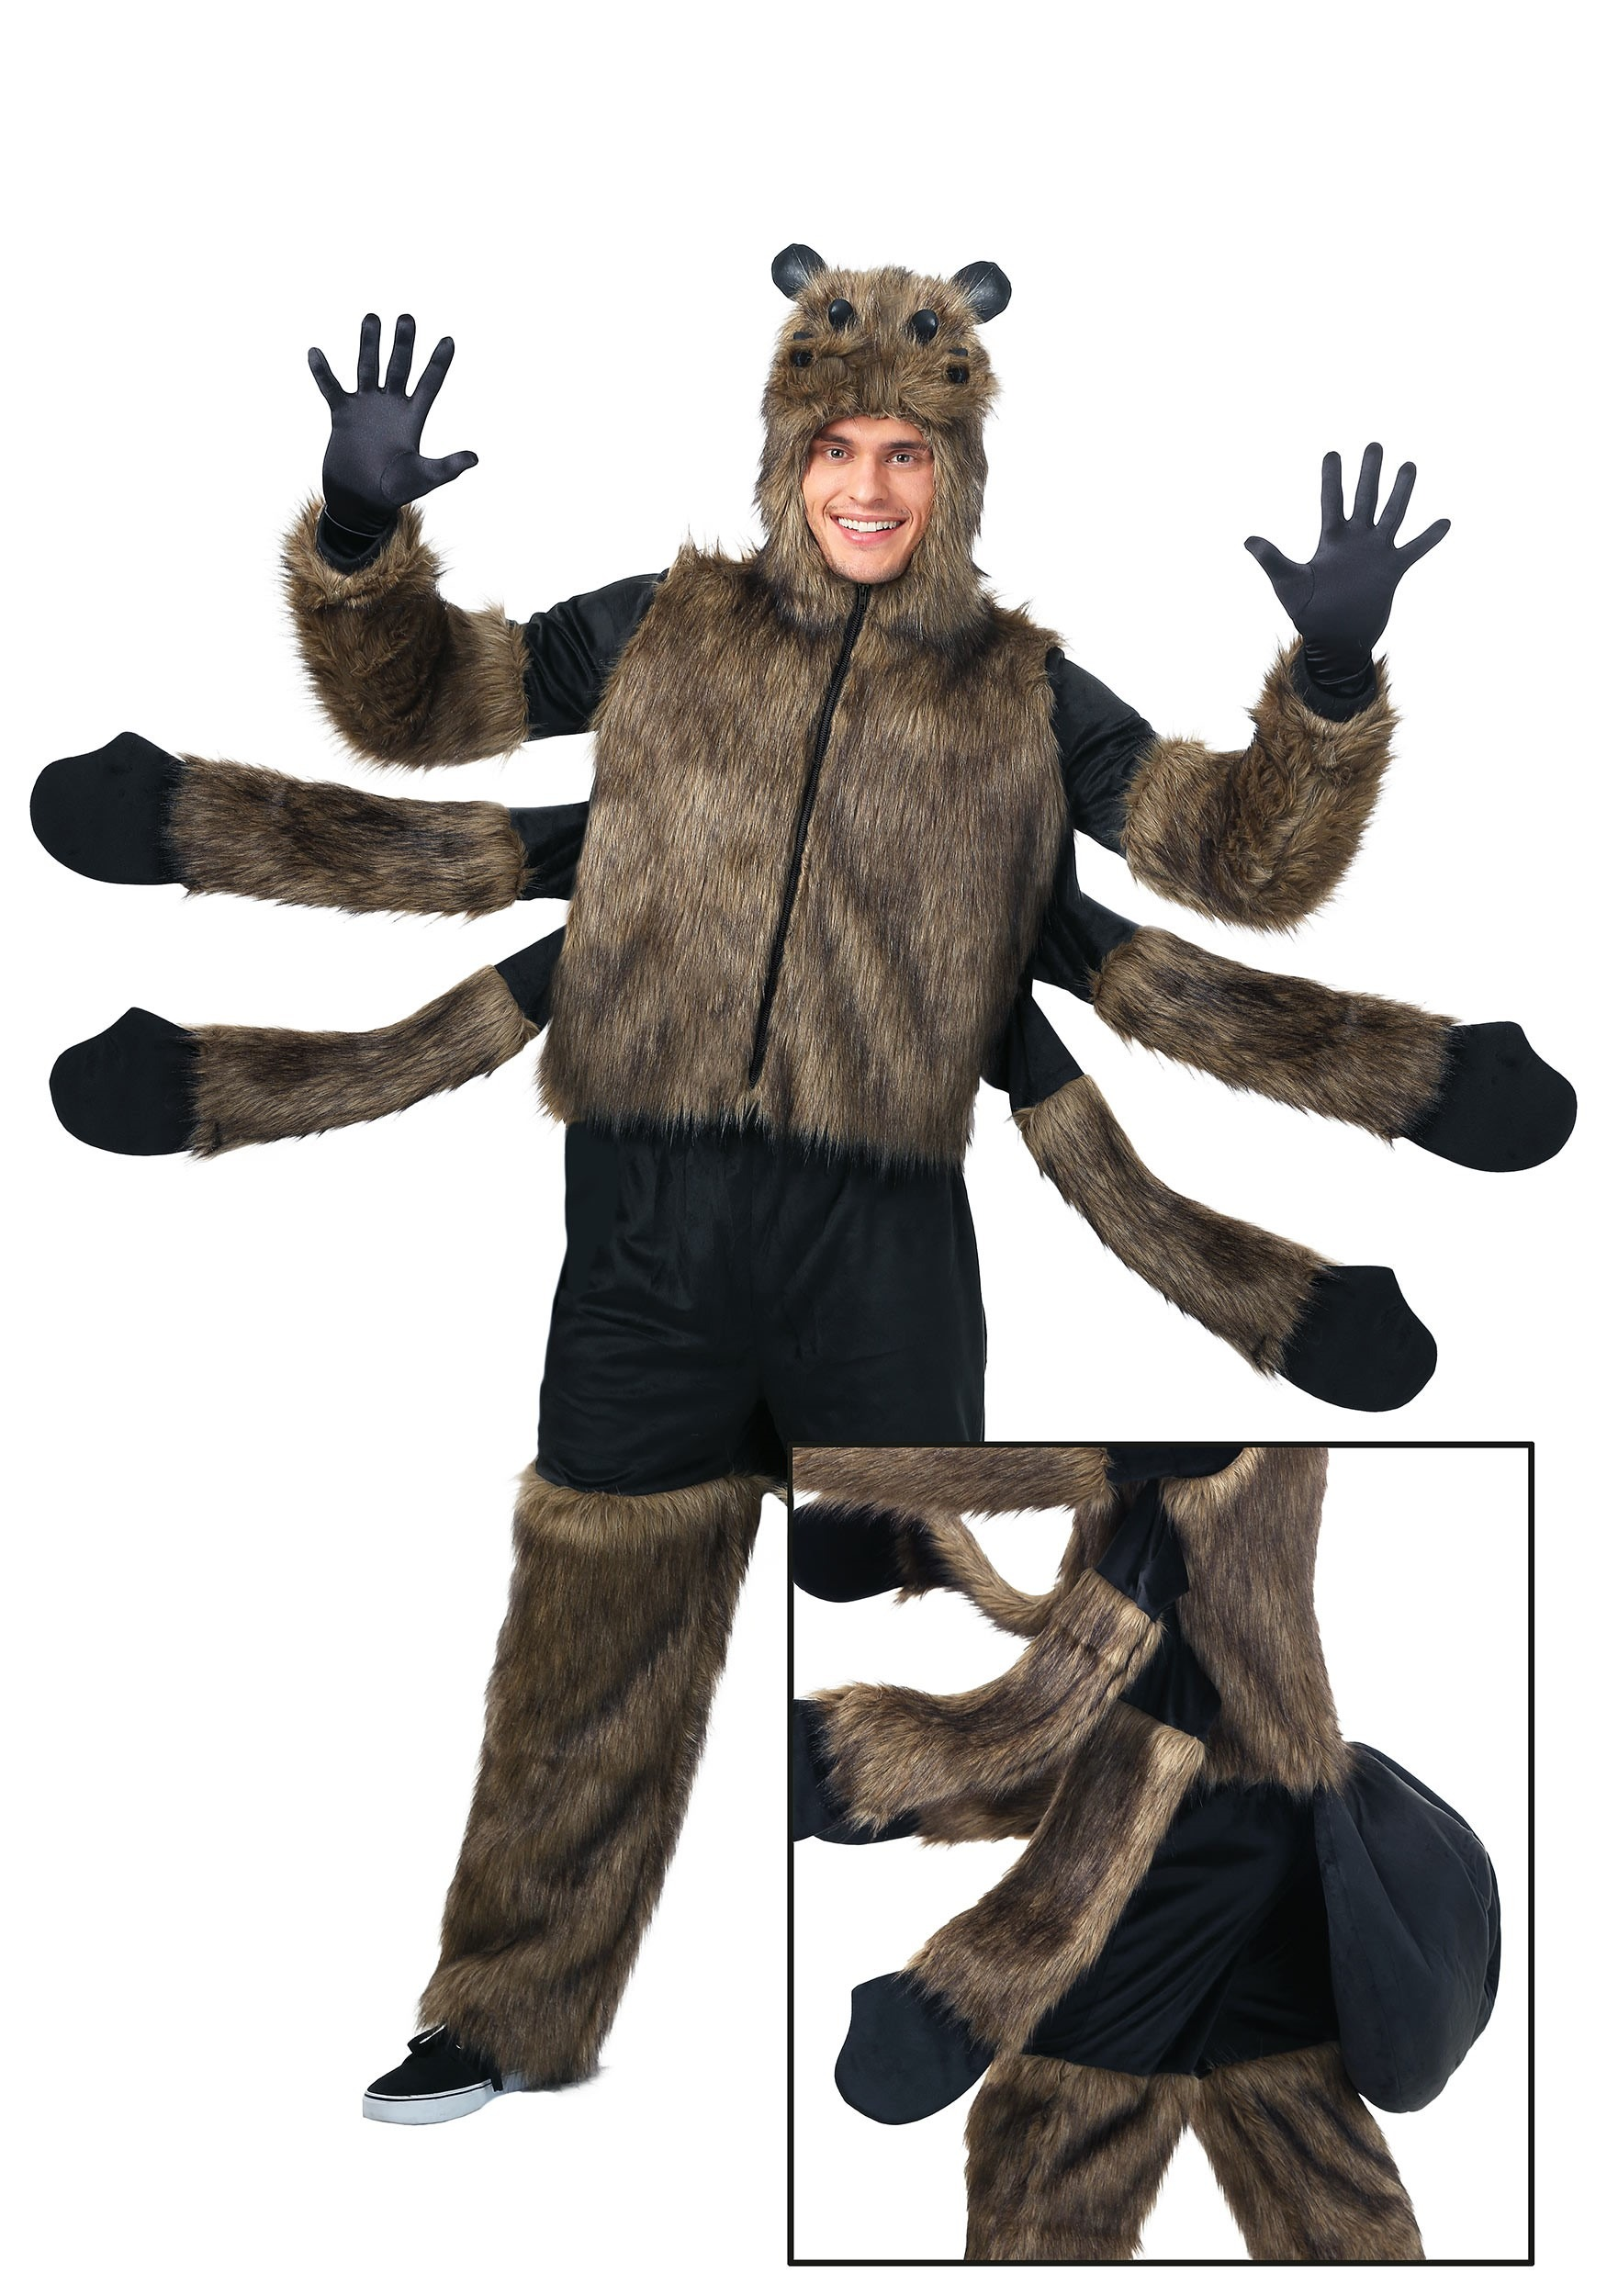 b3c11cd8fd423 Spider Costumes for Kids & Adults - HalloweenCostumes.com